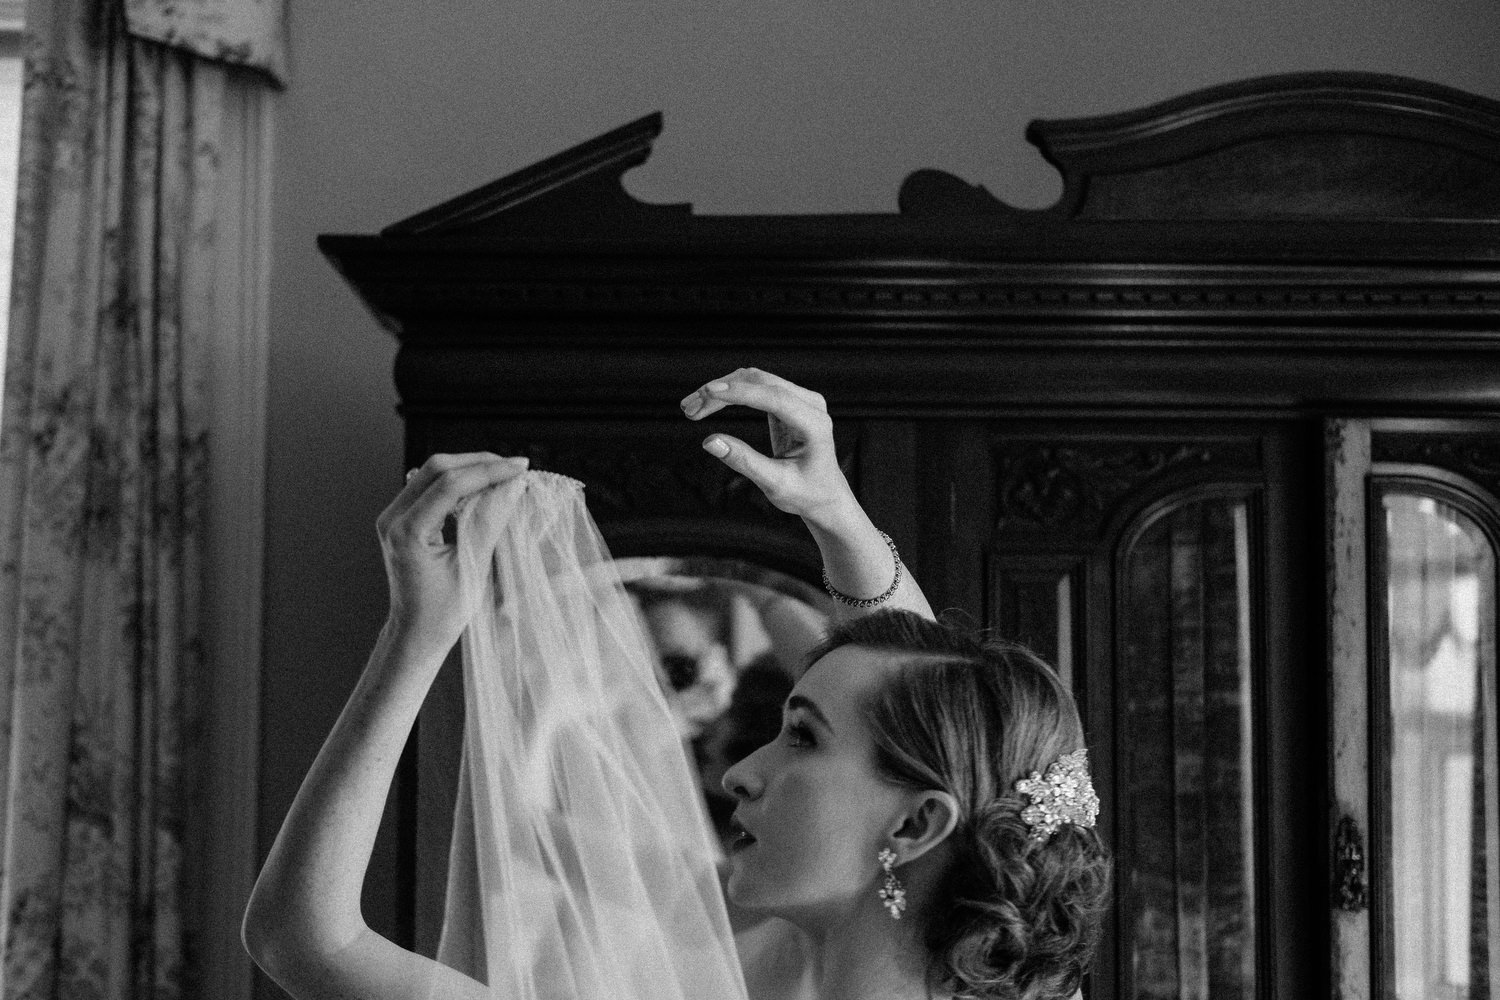 000000000000000000000086_bride_style_preparation_vintage_Hair_dress_photography_david_mcclelland_ireland_makeup_castle_hollywood_kinnity_wedding_photographer_fujifilm